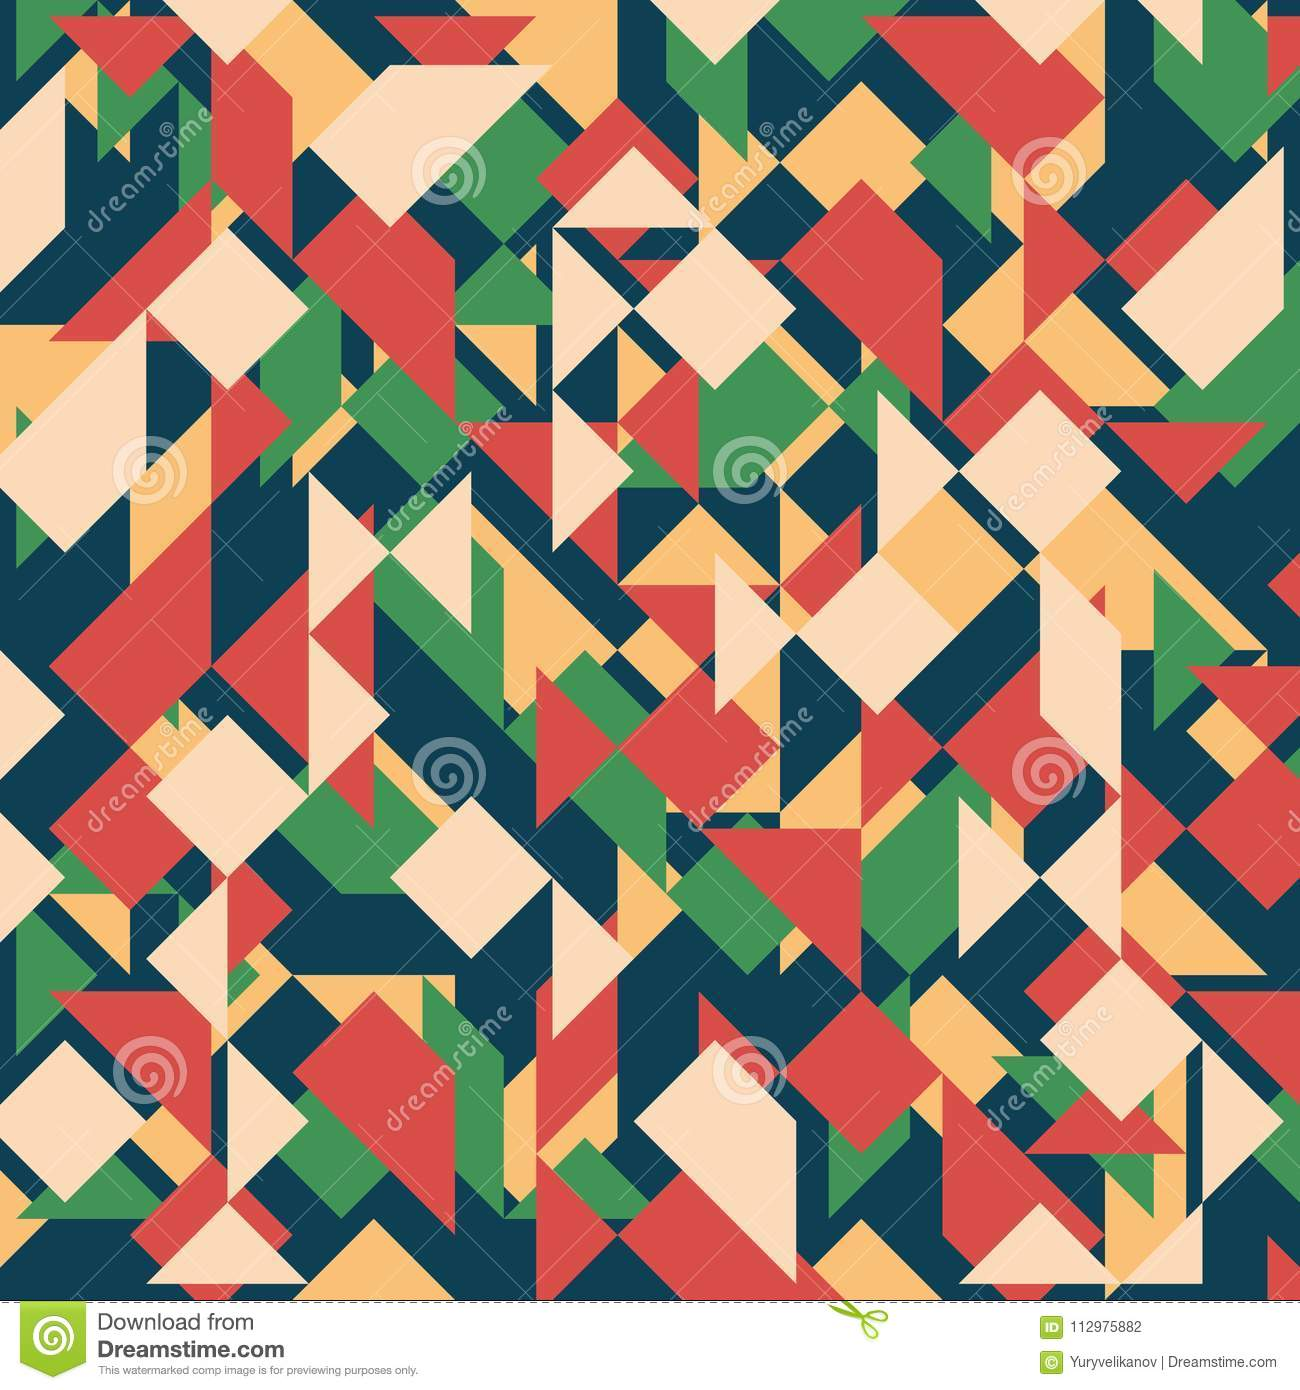 Abstract geometric background. Modern overlapping triangles and squares.